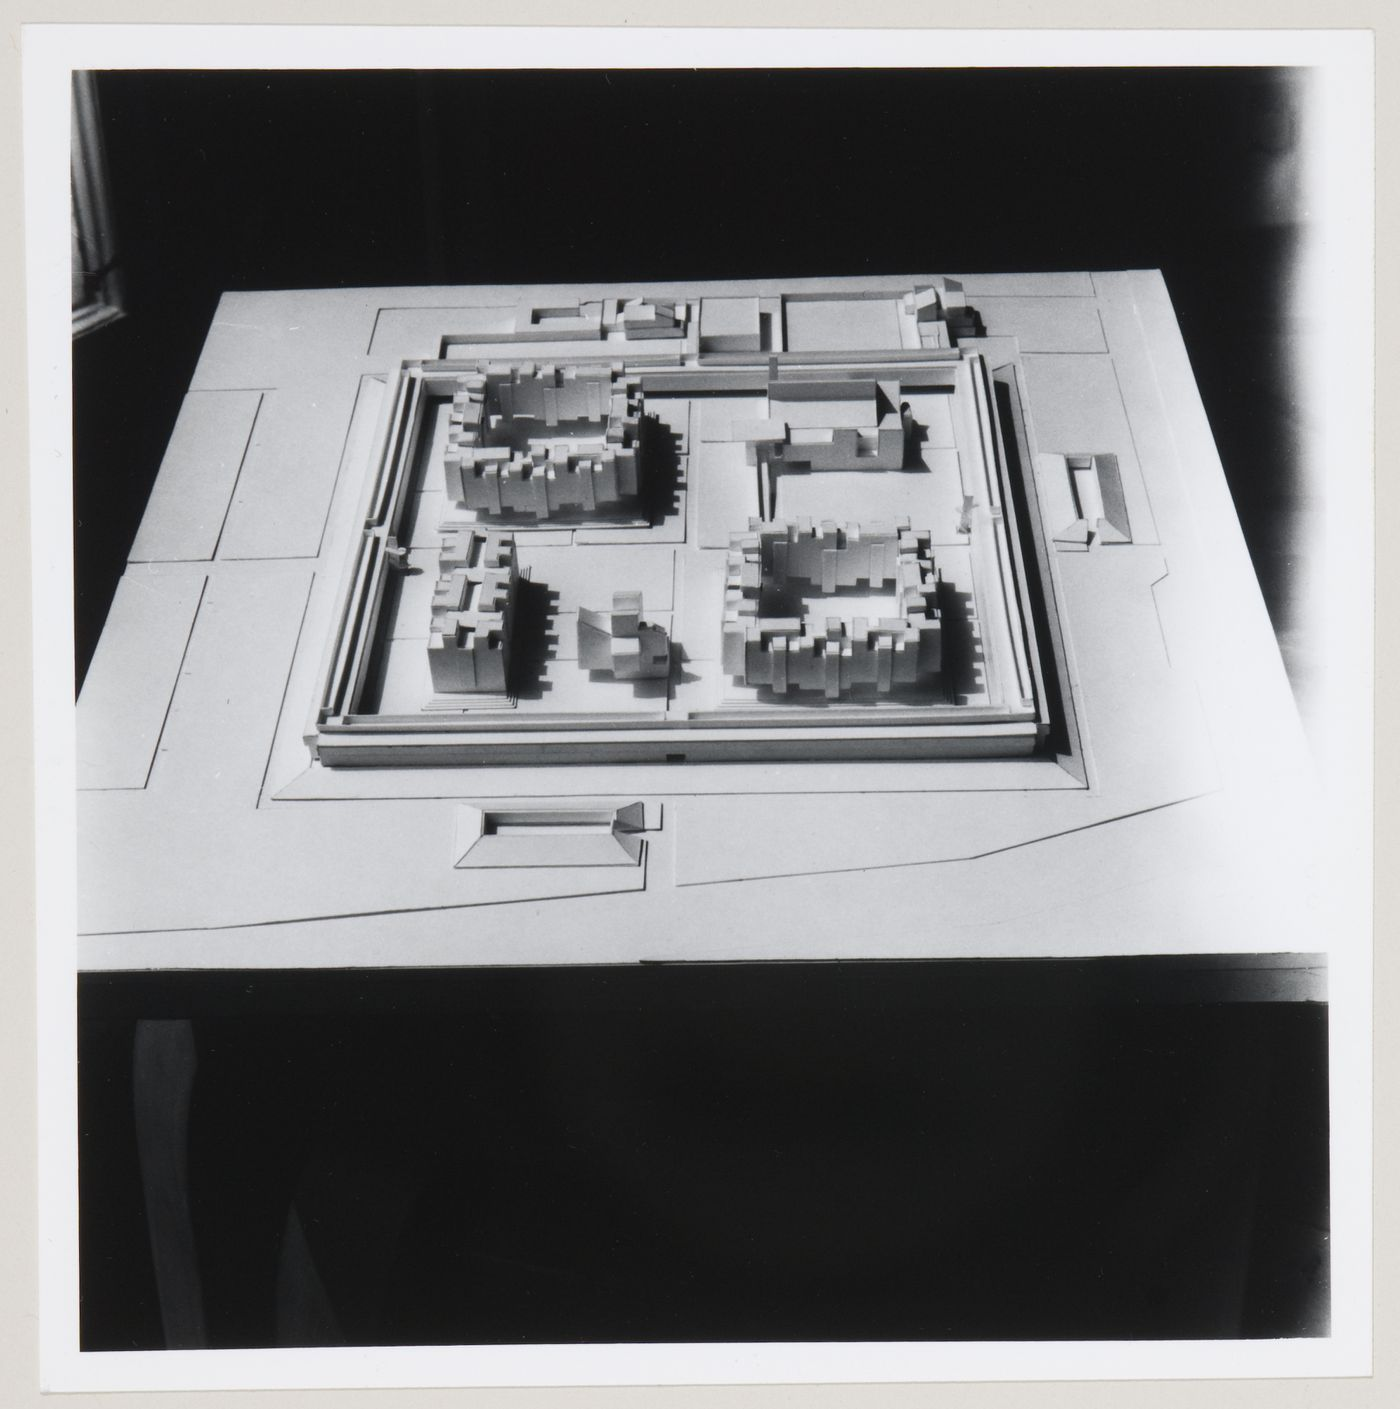 Churchill College, University of Cambridge, Cambridge, England: view of model